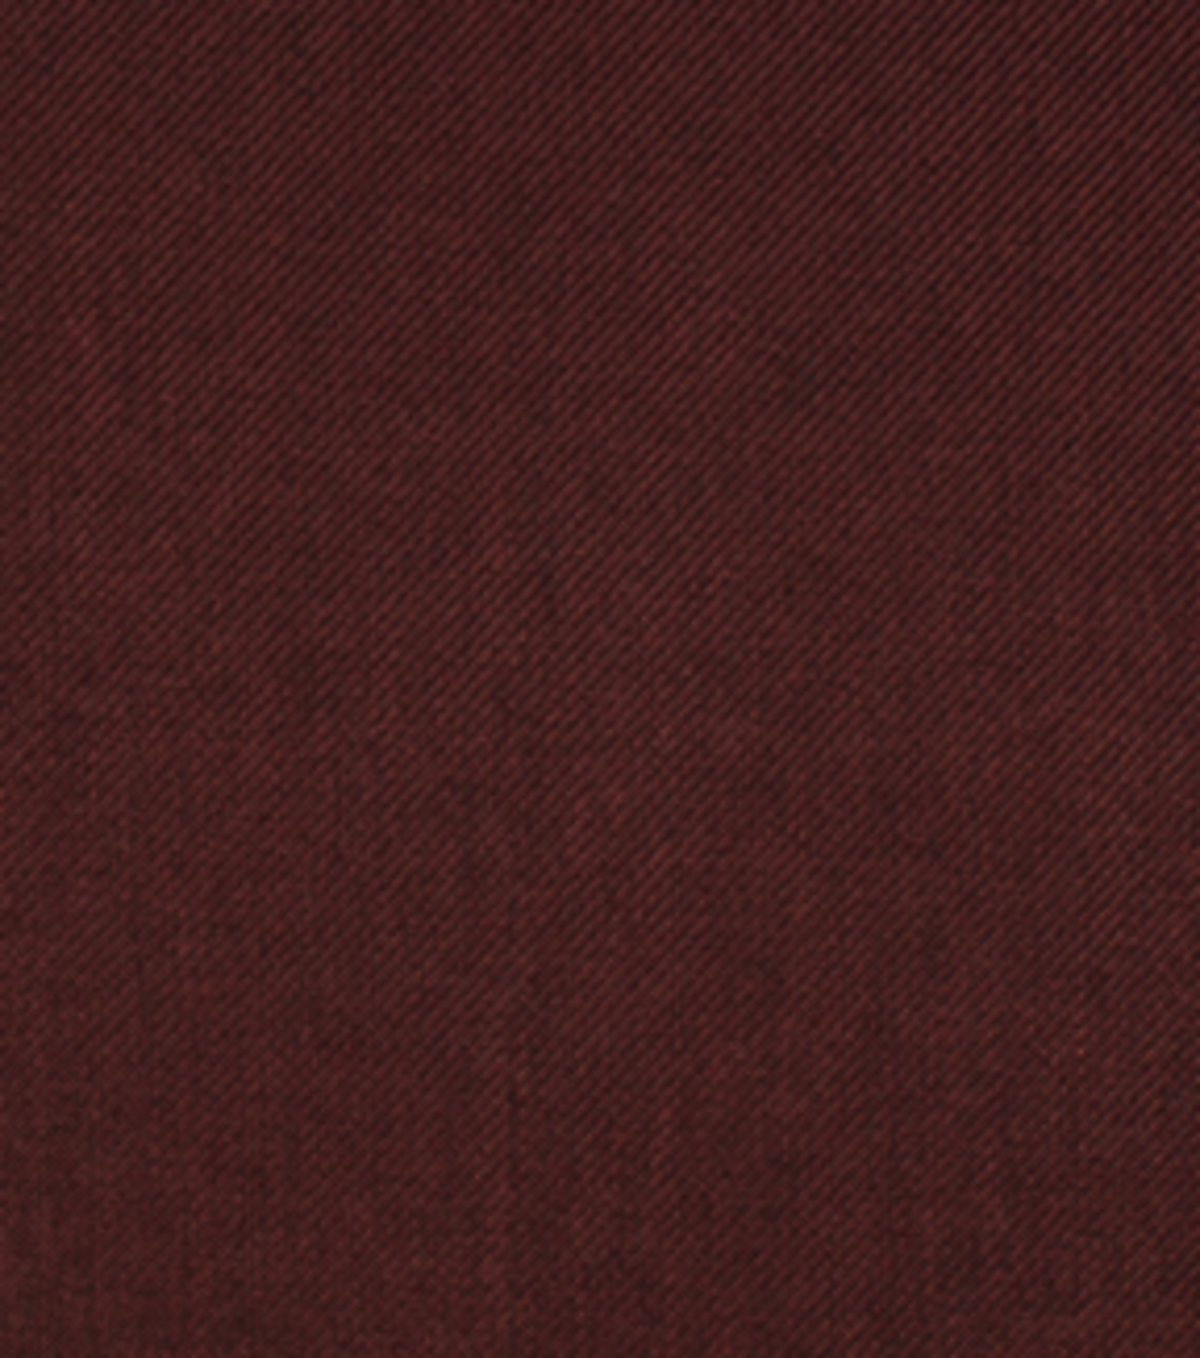 Home Decor 8\u0022x8\u0022 Fabric Swatch-Eaton Square Heston Wine